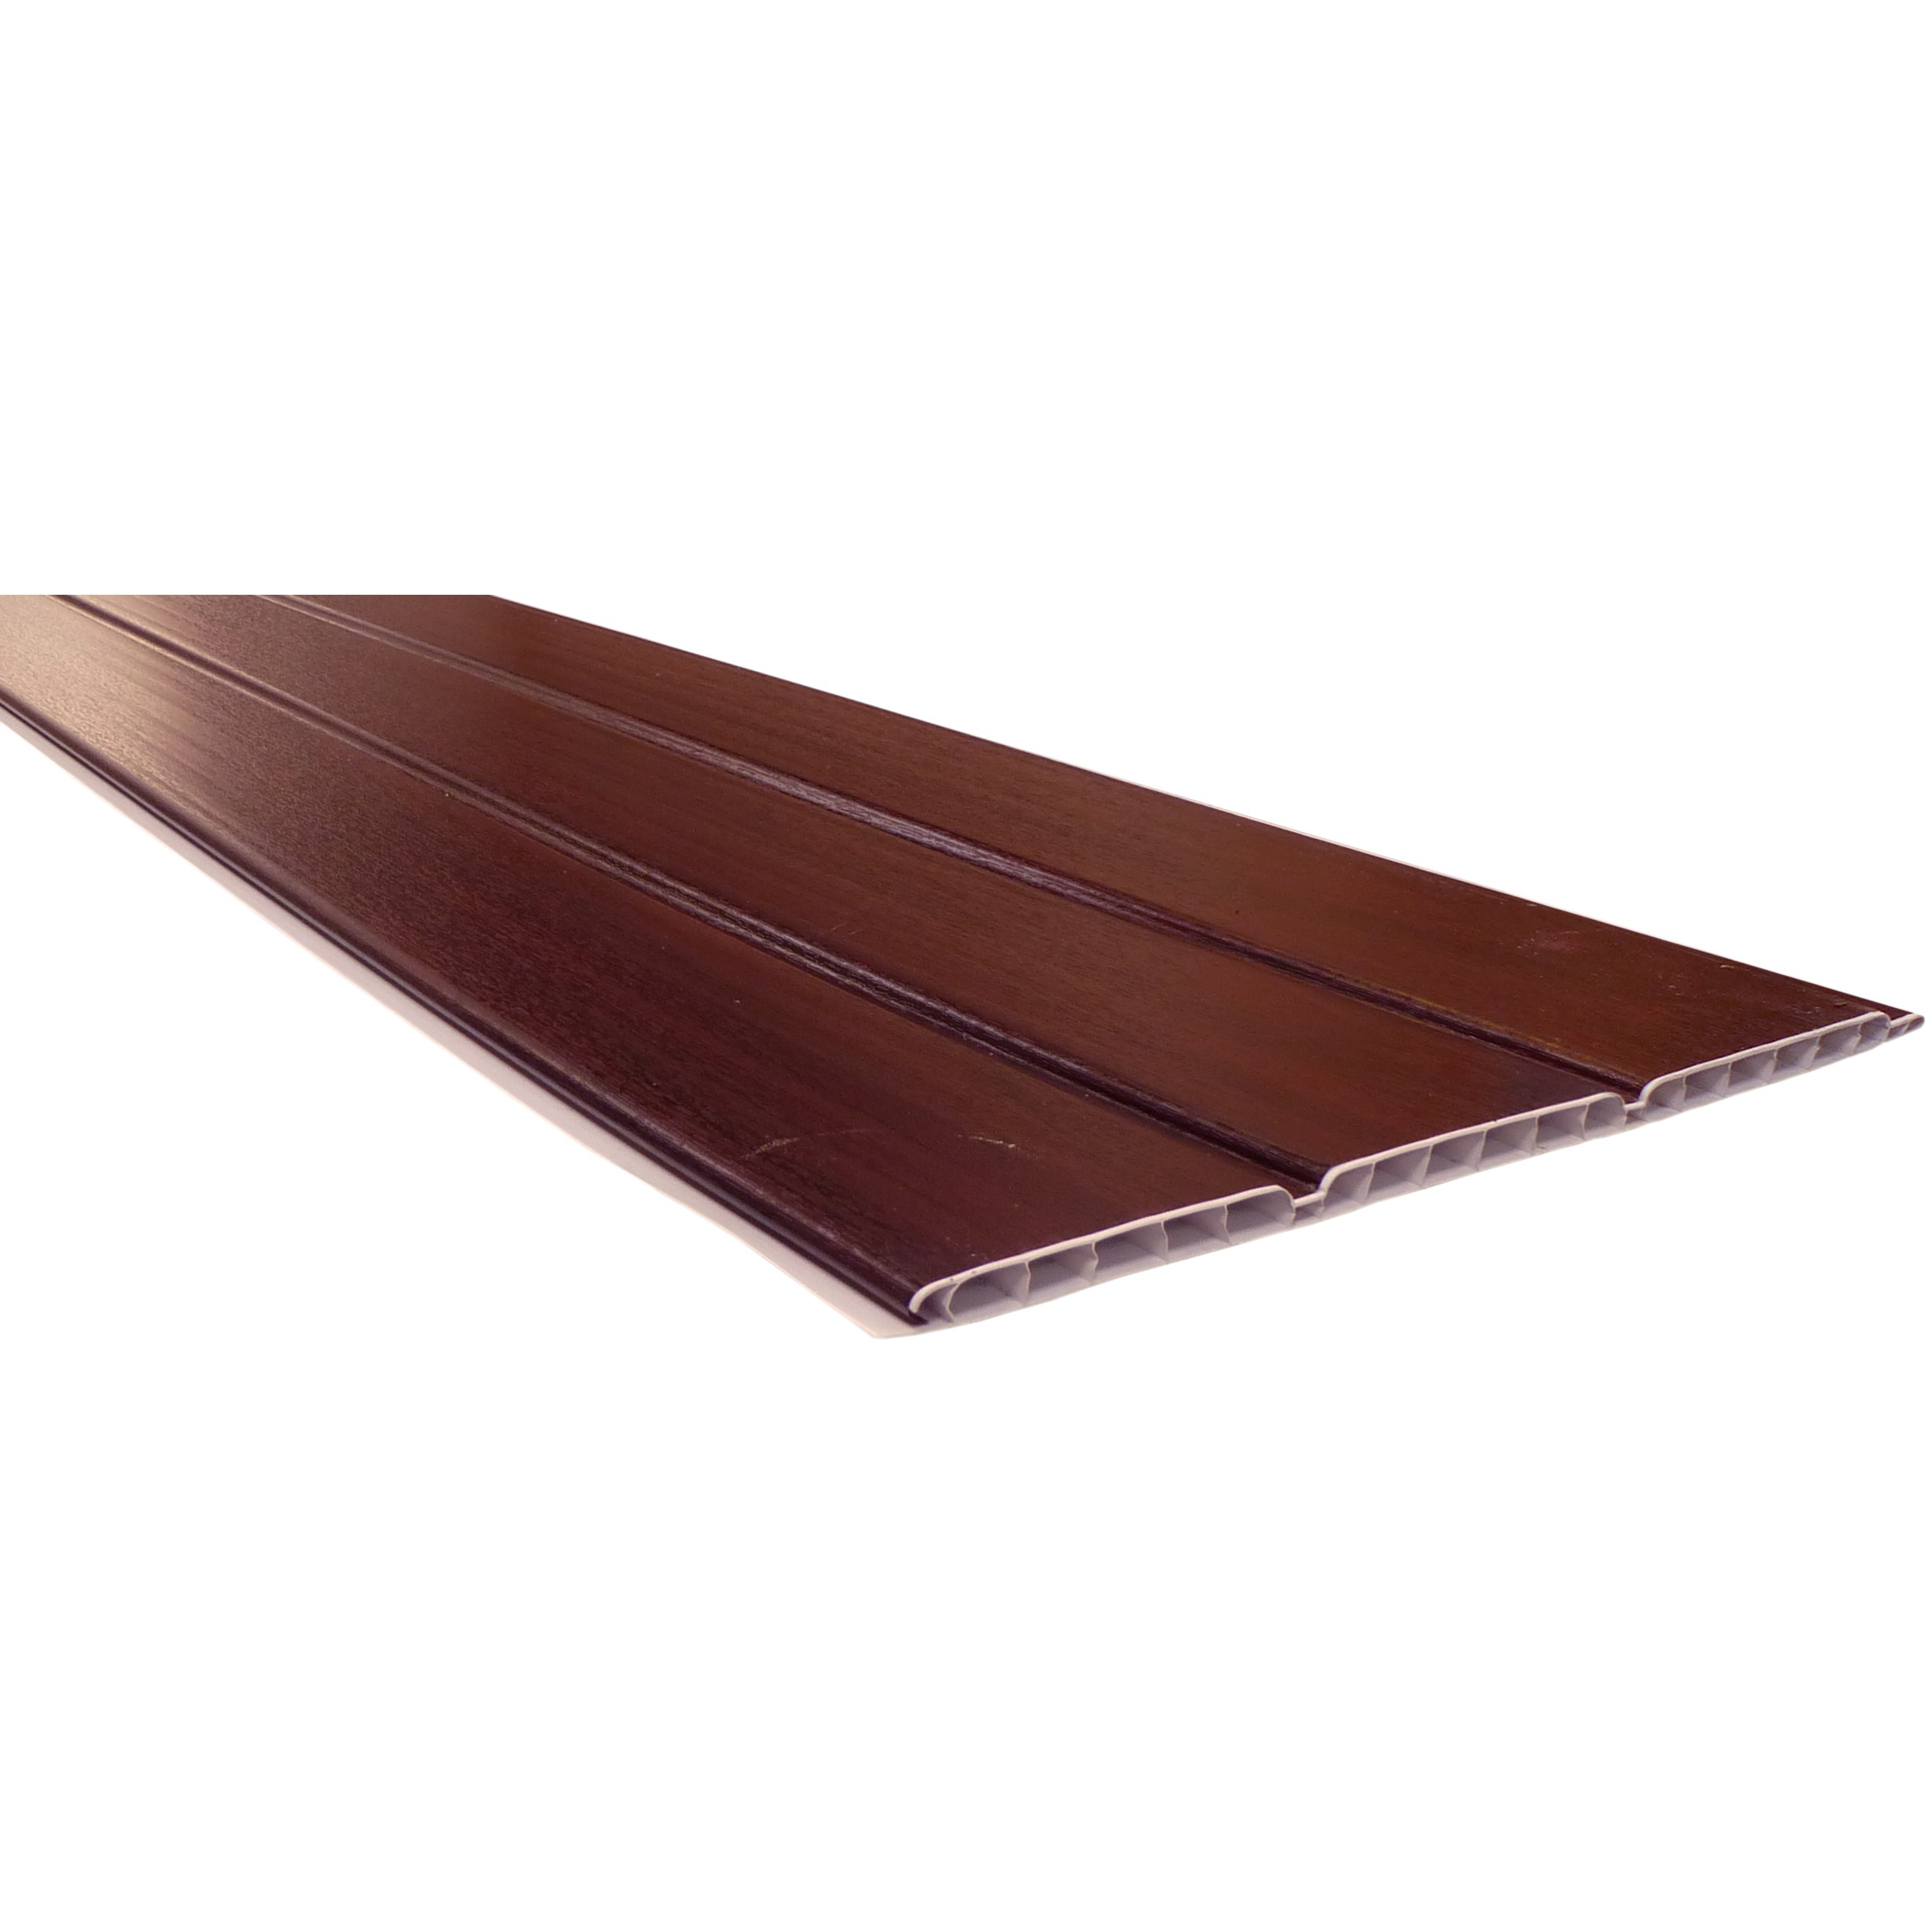 Freefoam 10mm Hollow Soffit Board - Woodgrain Rosewood, 300mm, 5 metre